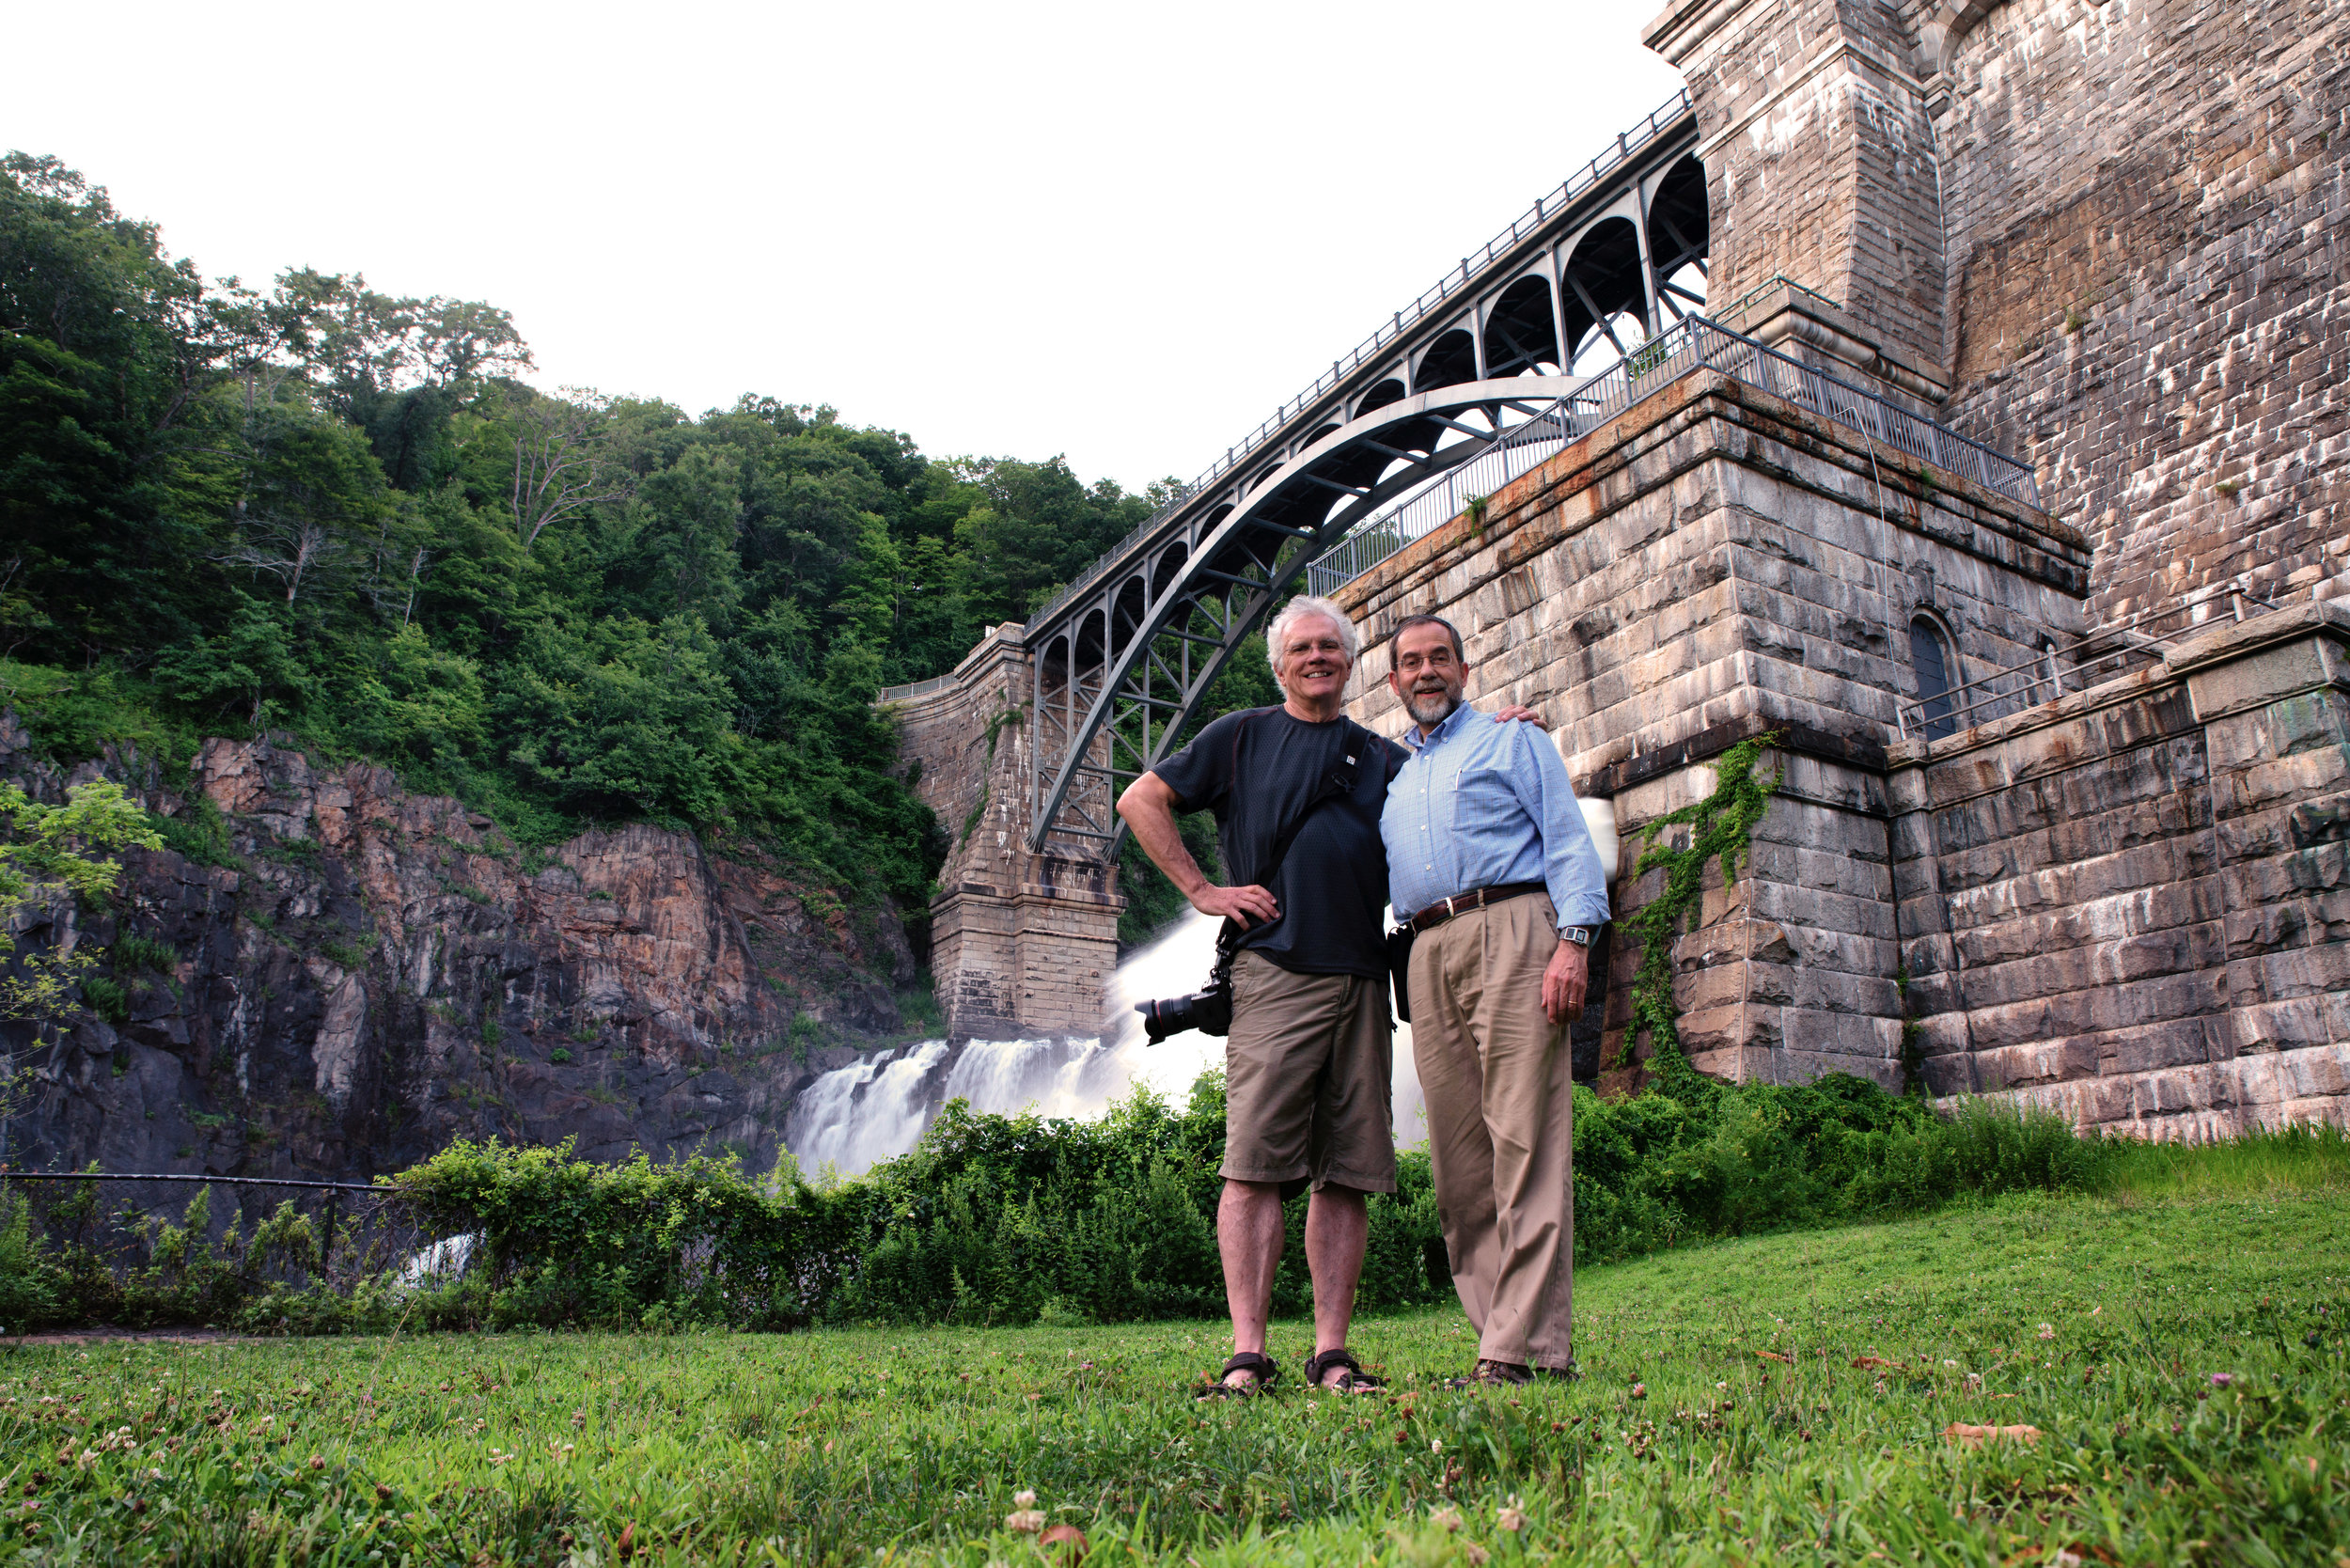 Platypod CEO & Inventor, Dr. Larry Tiefenbrunn (right) alongside Canon Explorer of Light Rick Sammon in front of New Croton Dam, Croton-on-Hudson, NY.